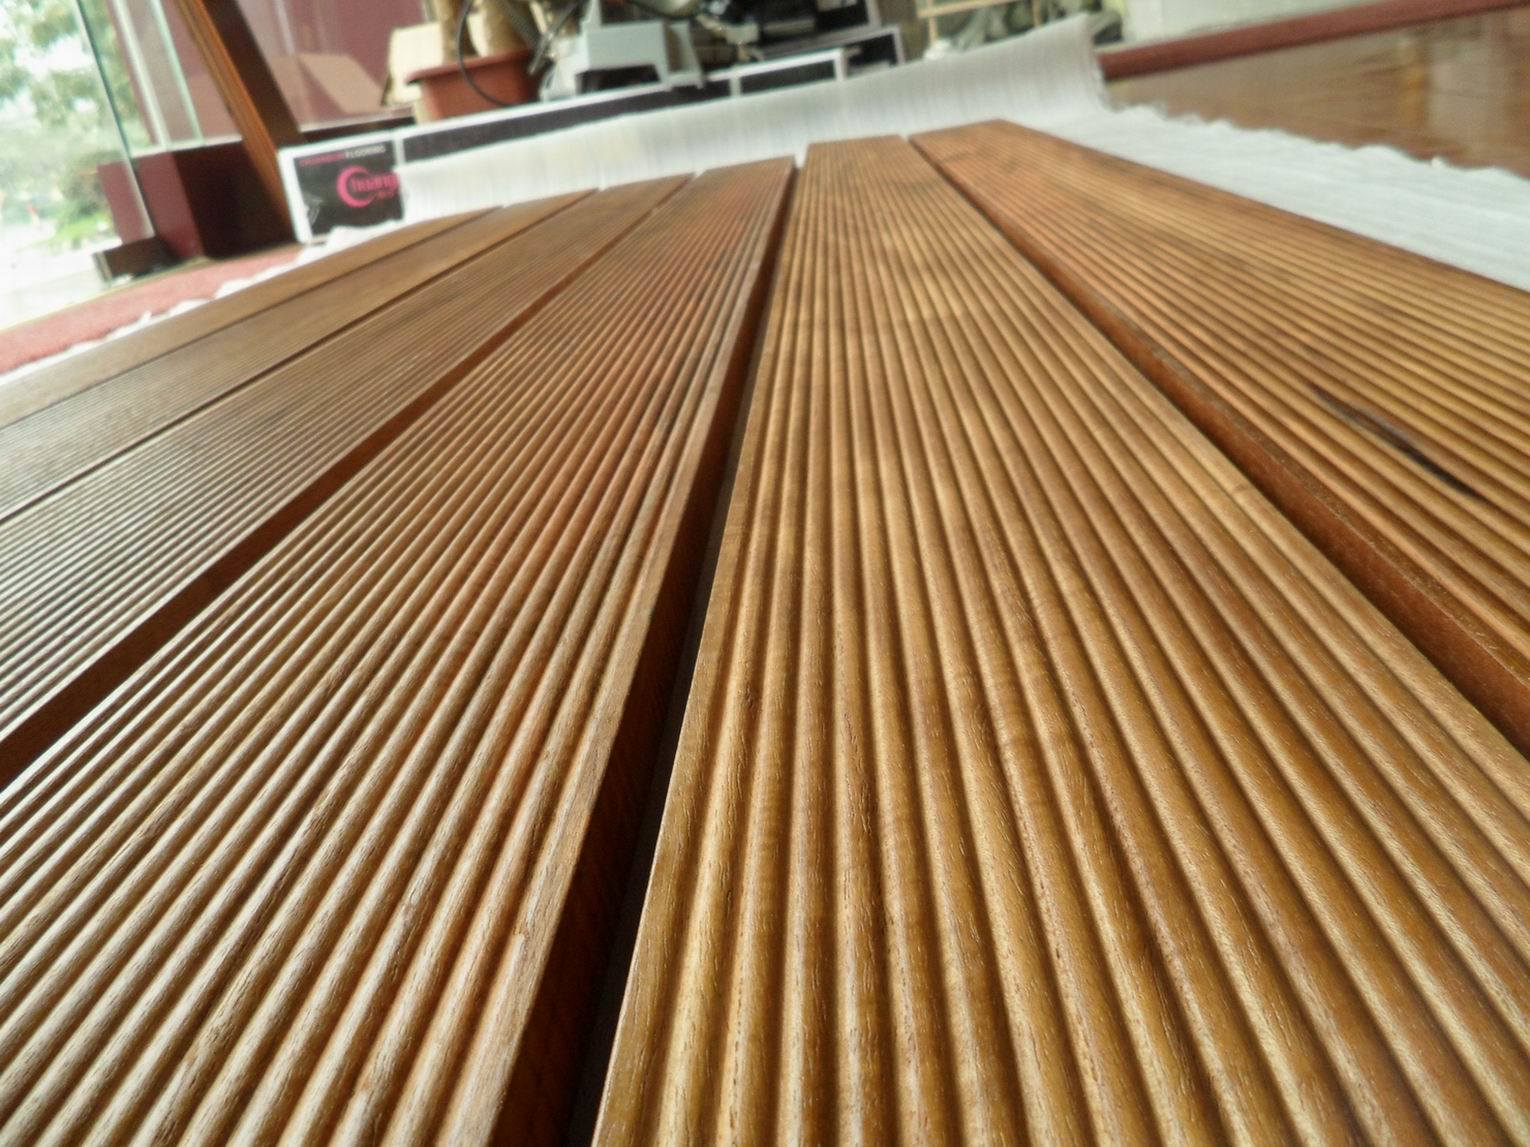 China burma teak hardwood timber decking btd xviii for Best timber for decking